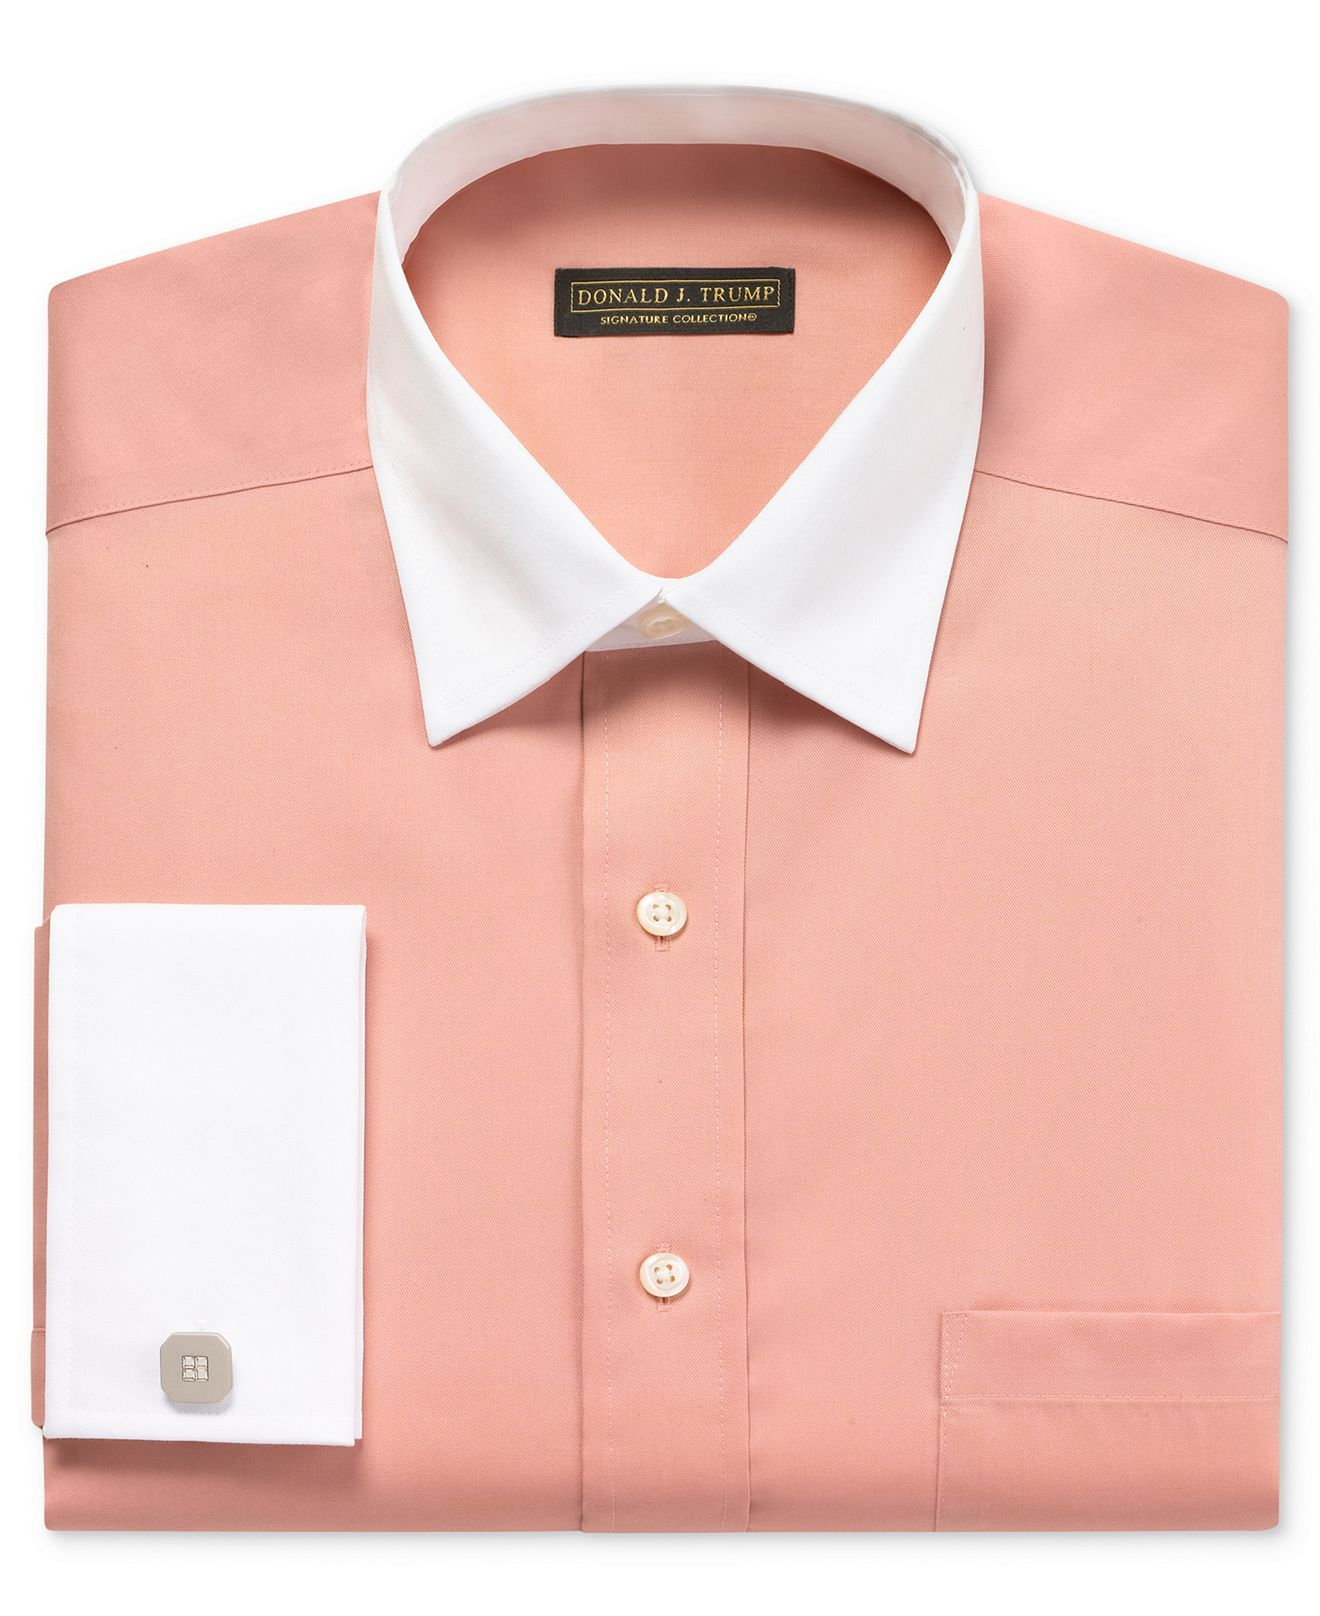 Donald j trump dress shirt solid long sleeve shirt with for Mens shirt french cuff